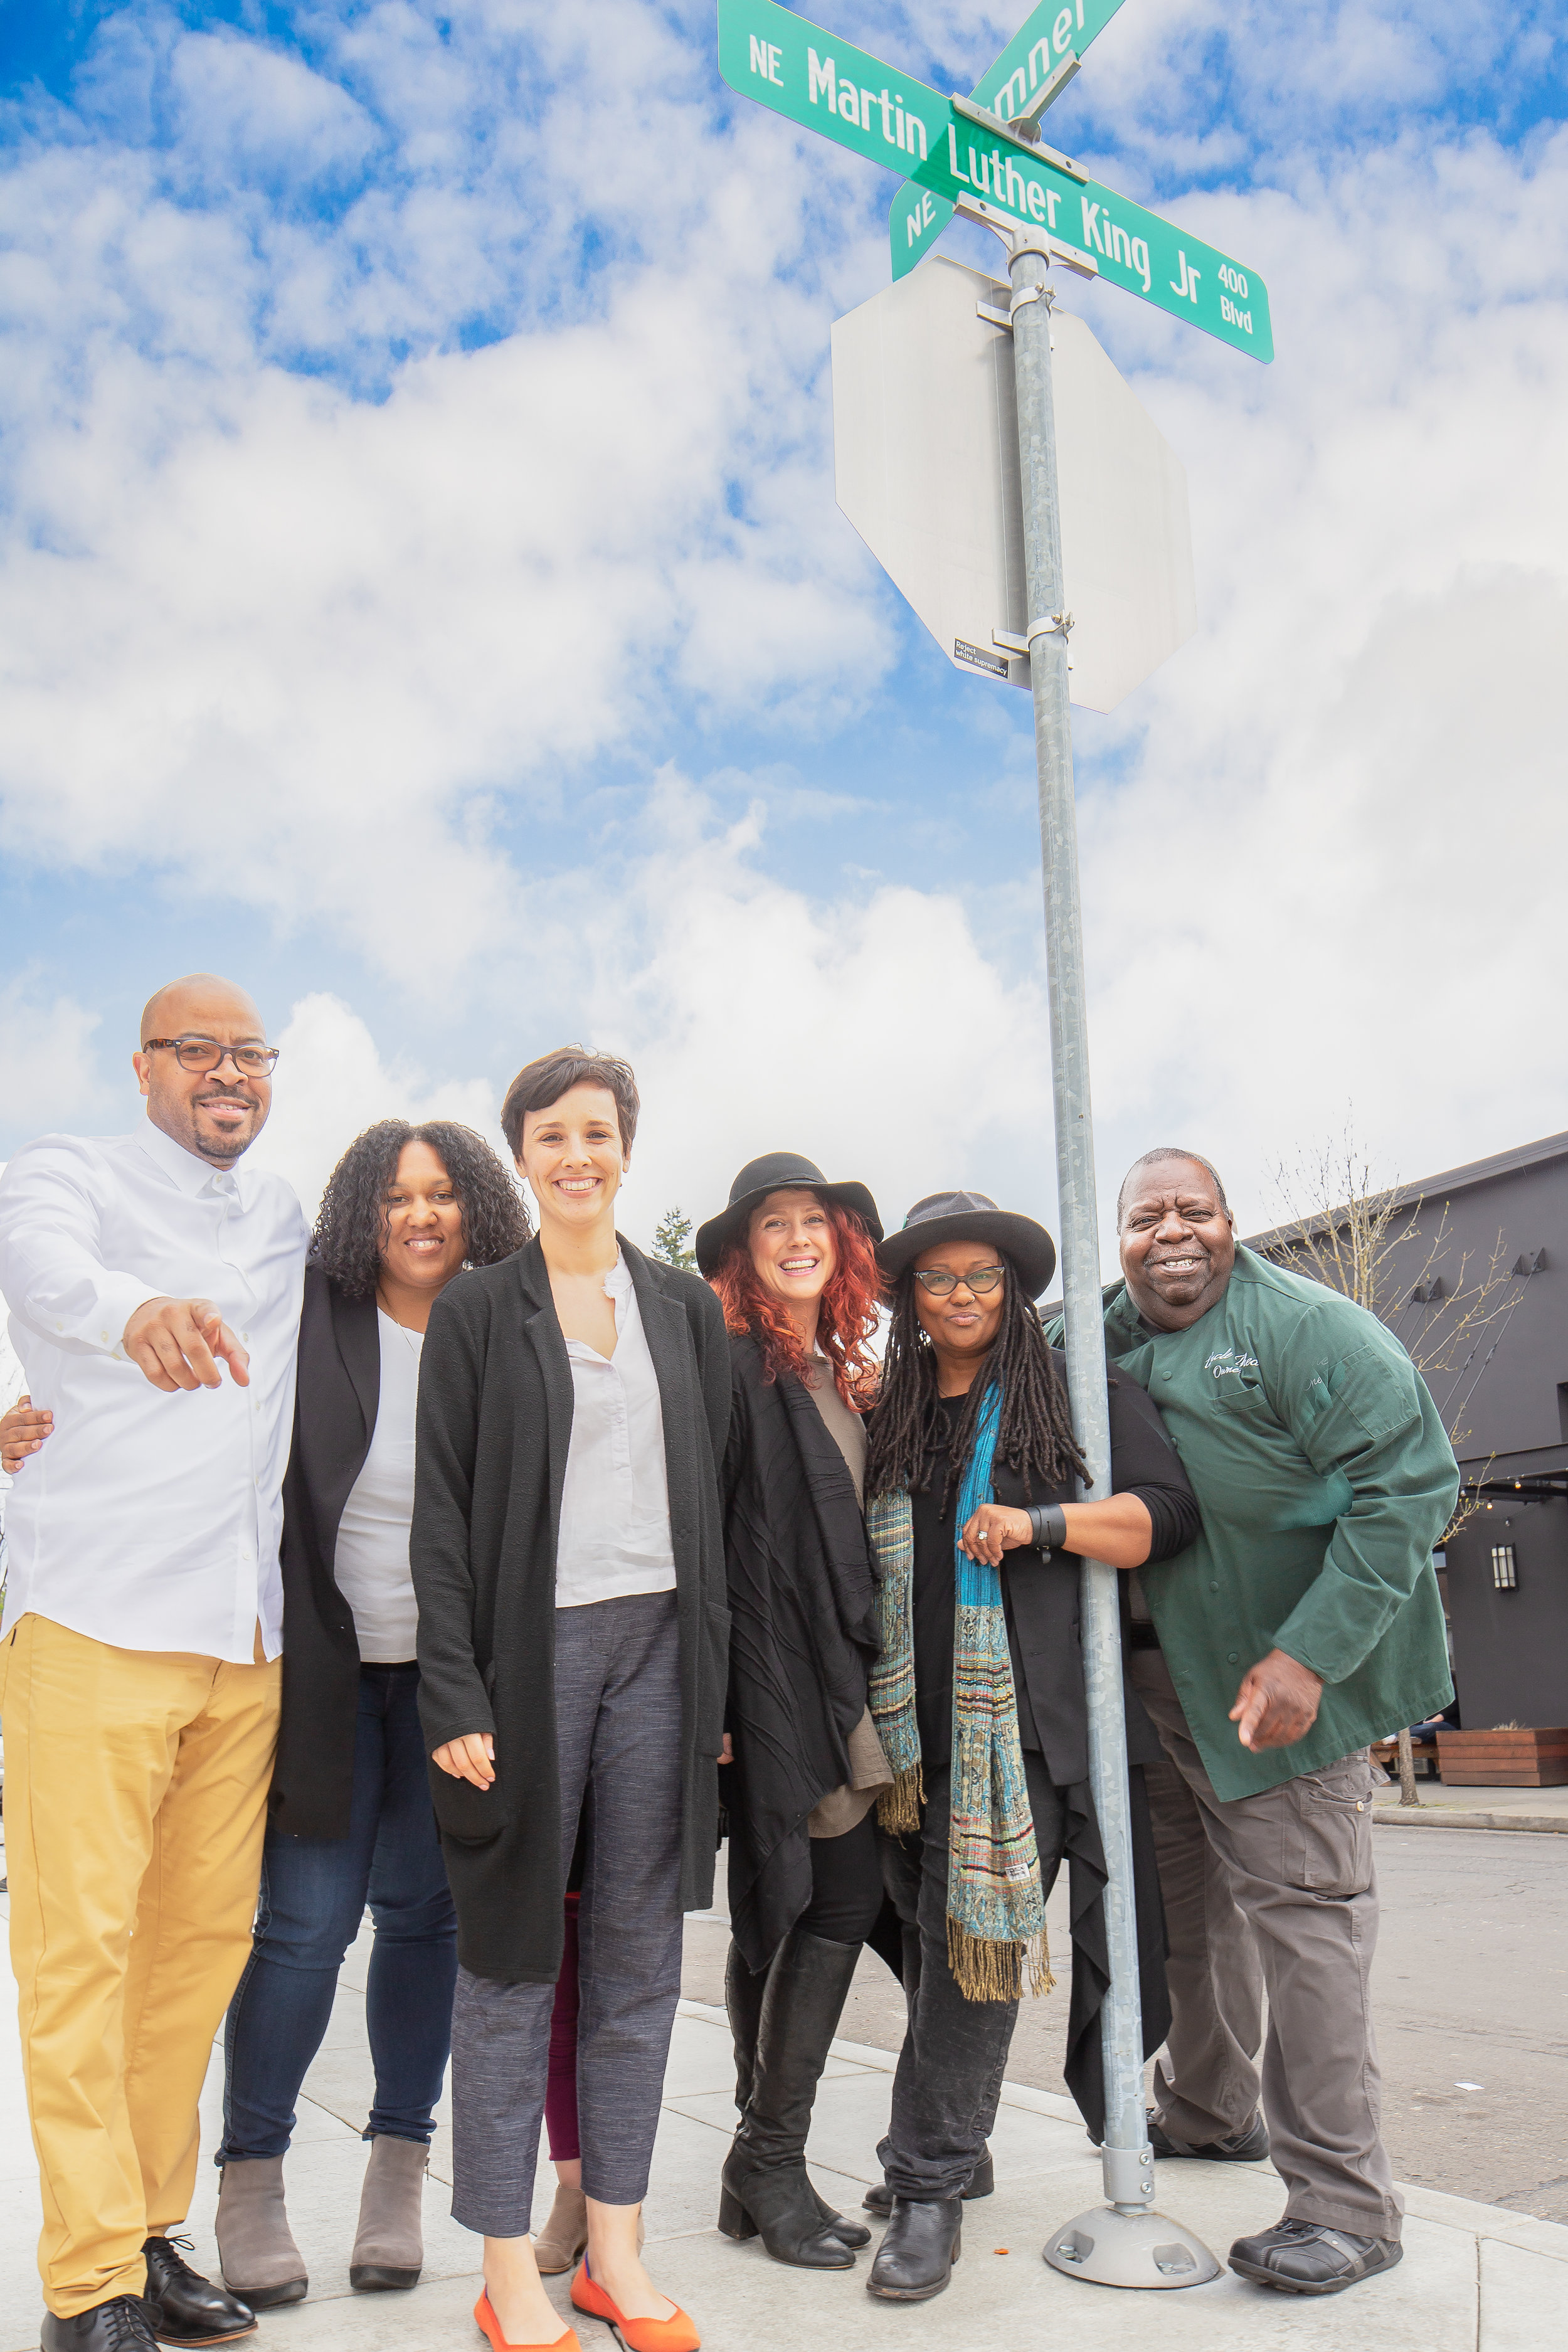 Jamaal and Christina Lane, Champions Barbershop; Project Manager Jessie Burke; Dayna and Cole Reed, greenHAUS gallery+boutique; and Theotis Cason, Cason's Fine Meats